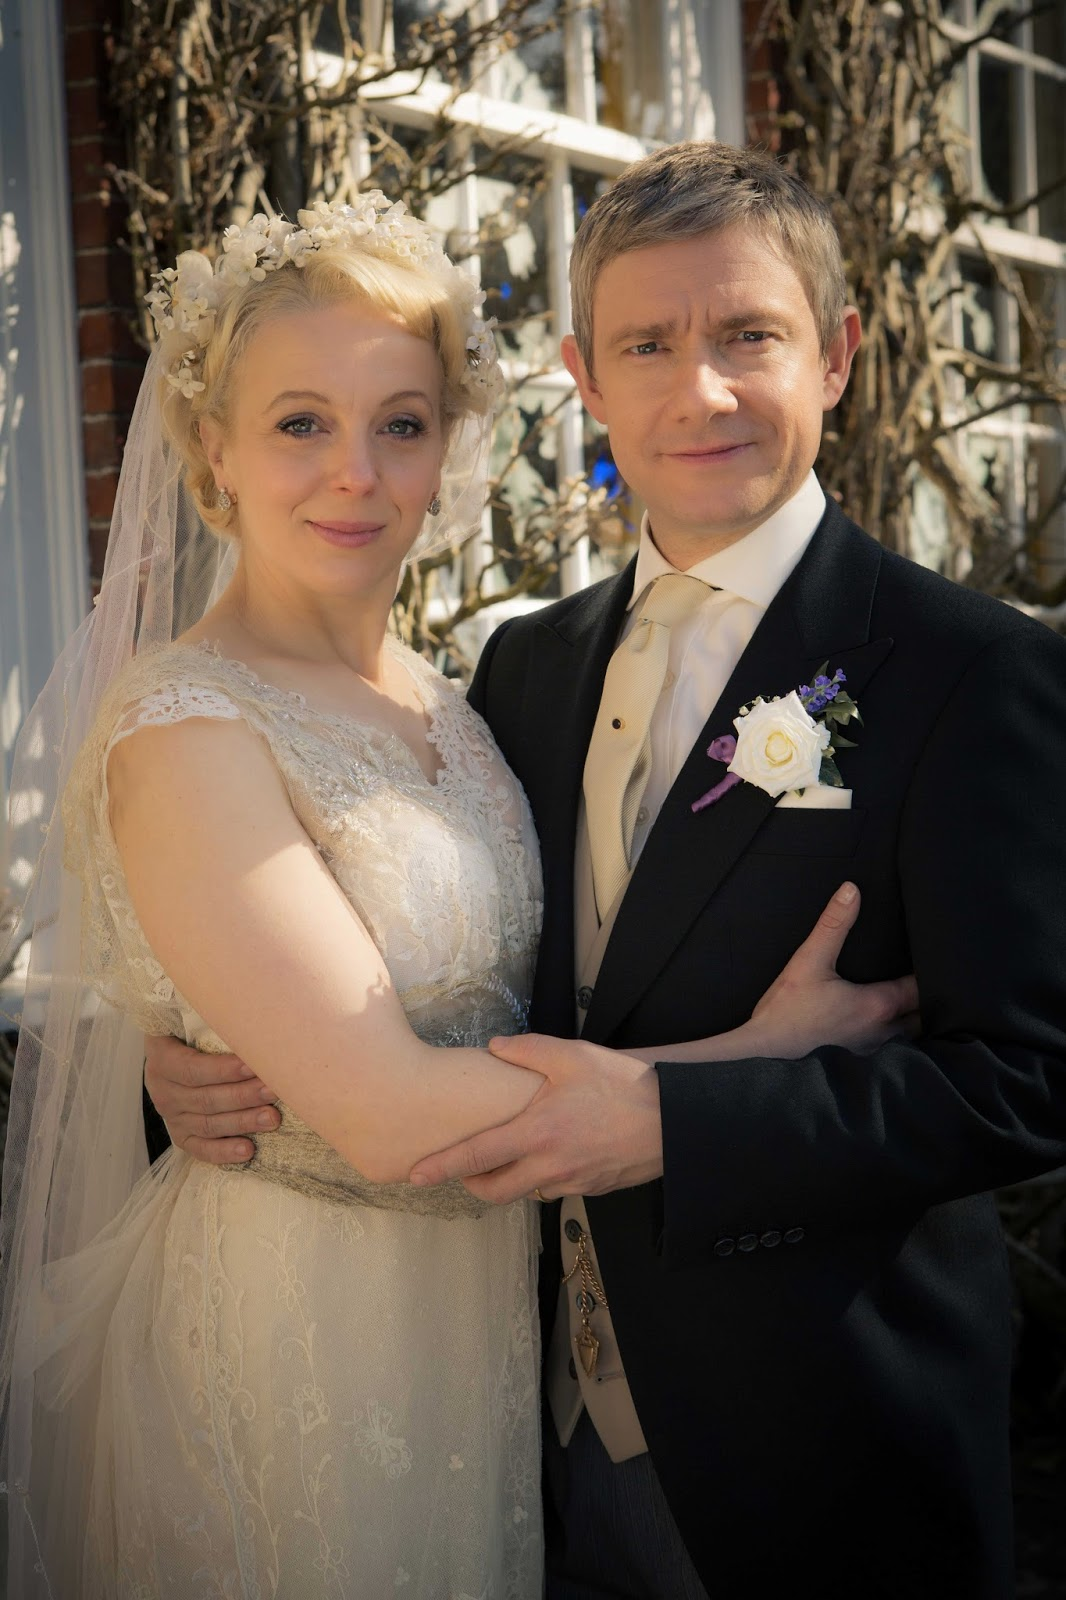 Martin Freeman and Amanda Abbington as John Watson and Mary Morstan in BBC Sherlock Season 3 Episode 2 The Sign of Three